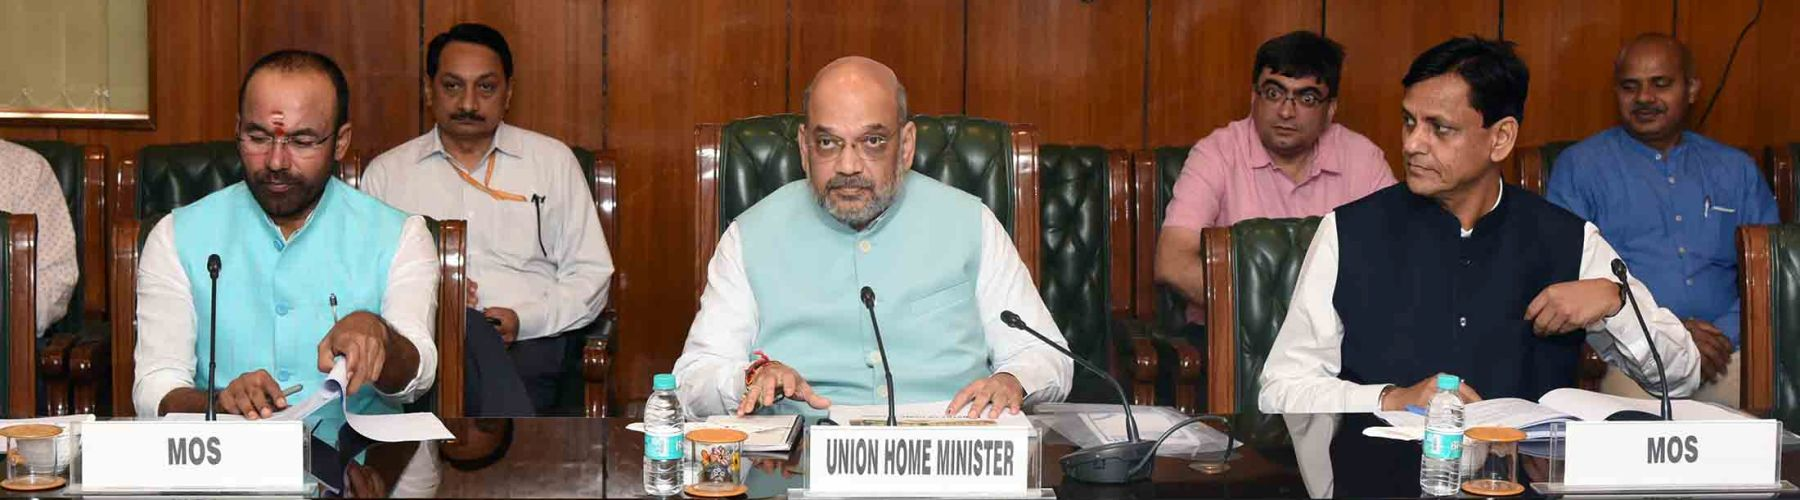 Union Home Minister,Shri Amit Shah chairing a review meeting with senior officers of MHA on June 1, 2019 in New Delhi. The Union Ministers of State for Home Affairs, G. Kishan Reddy and Shri Nityanand Rai are also seen.